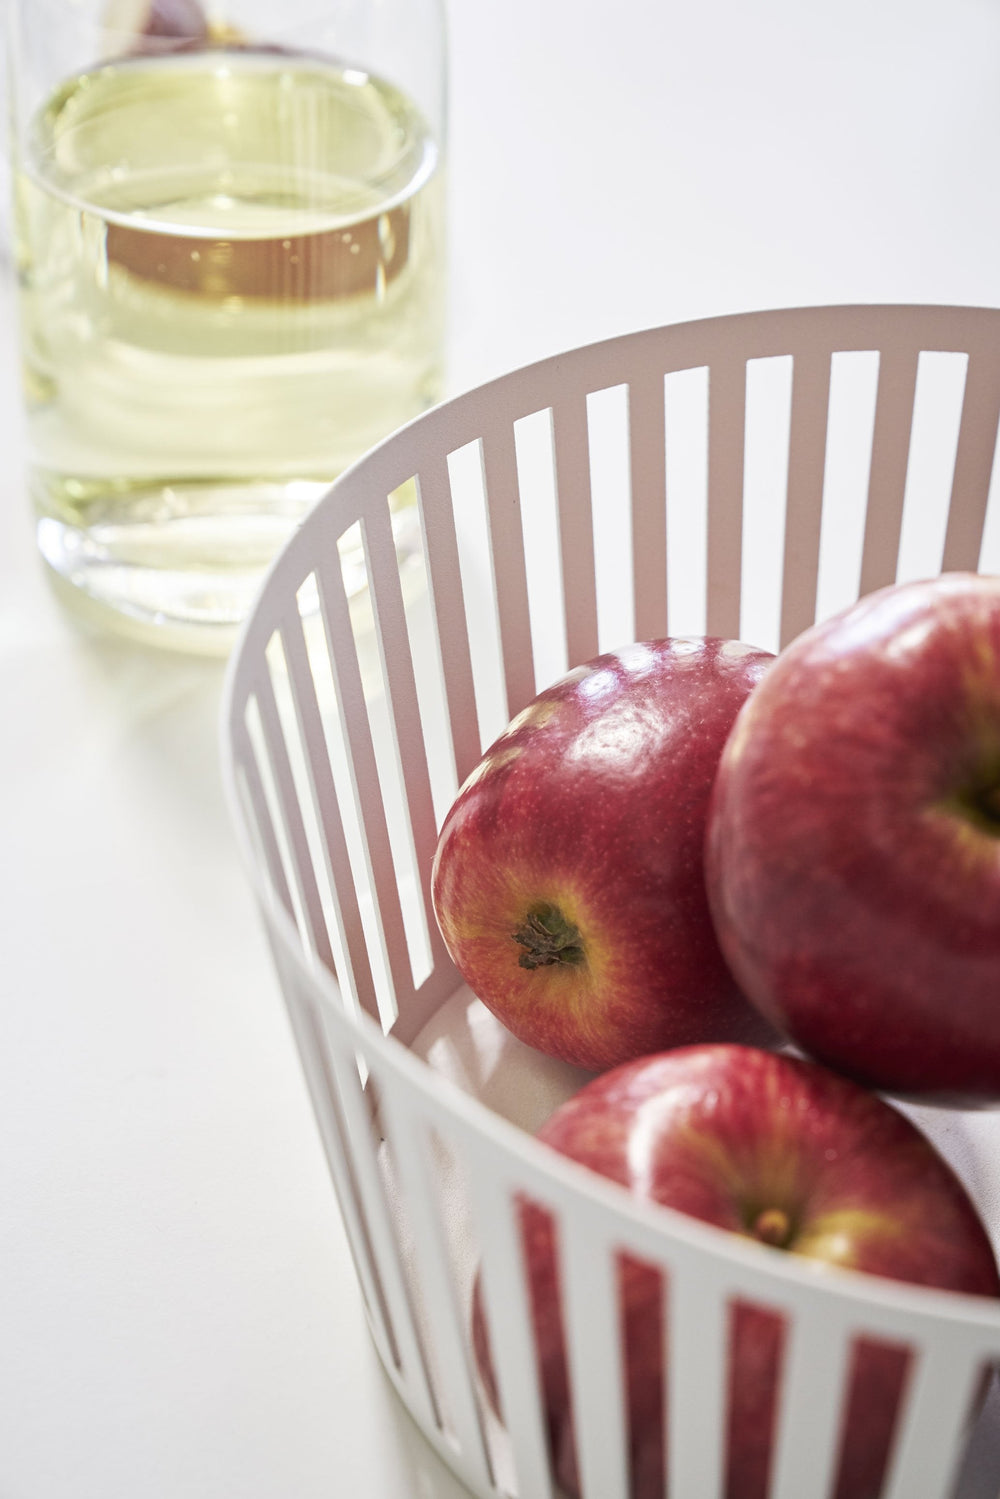 Detail view of apples in a white Yamazaki Striped Steel Fruit Basket